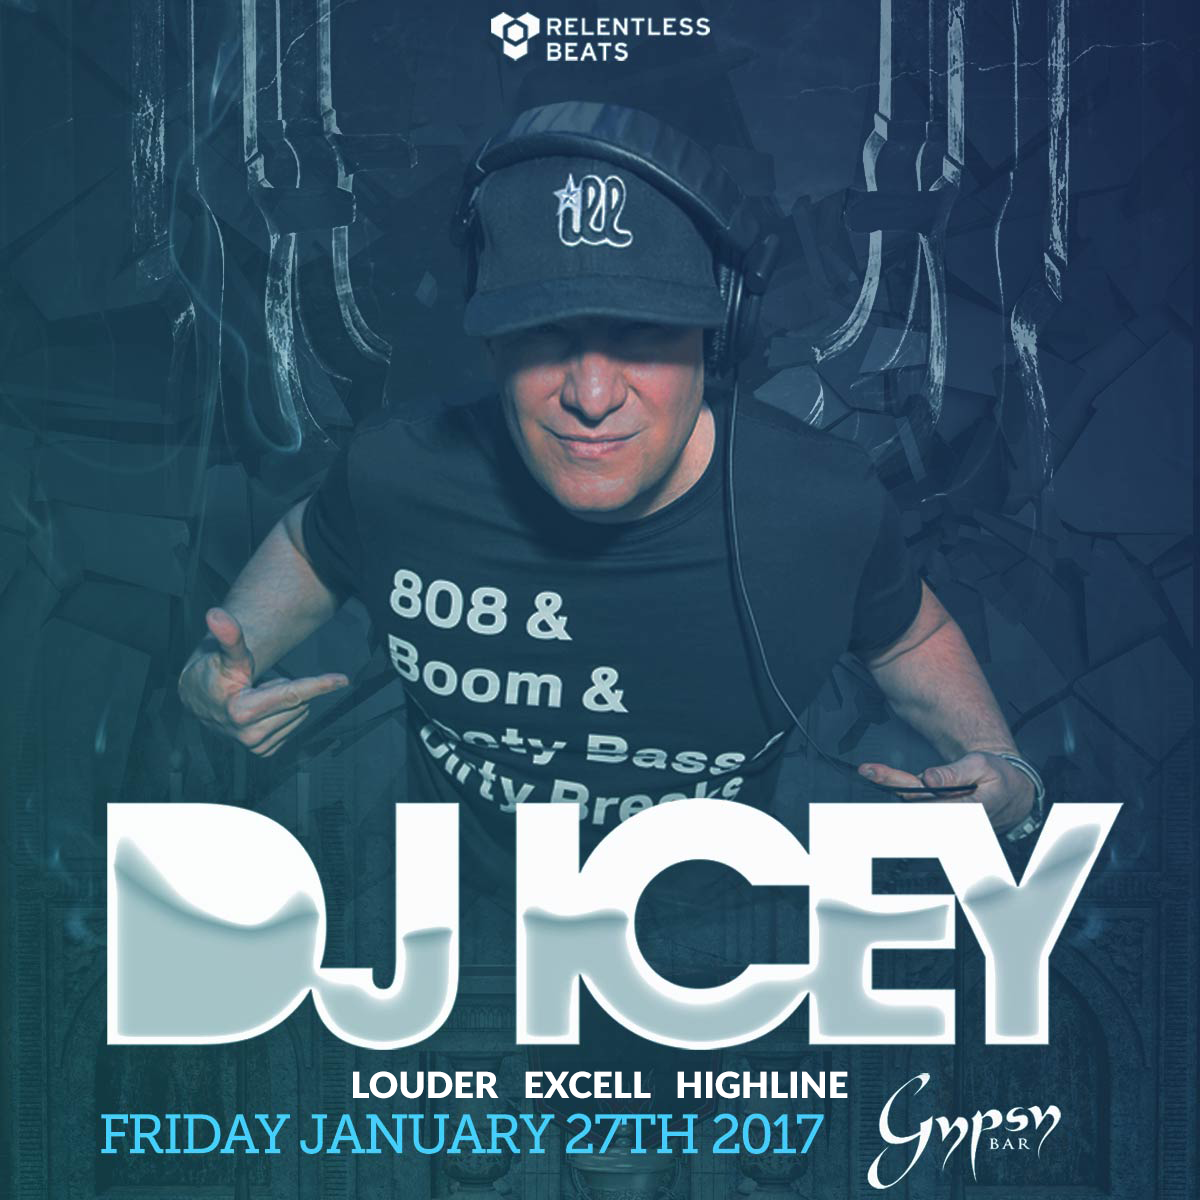 Flyer for Dj Icey